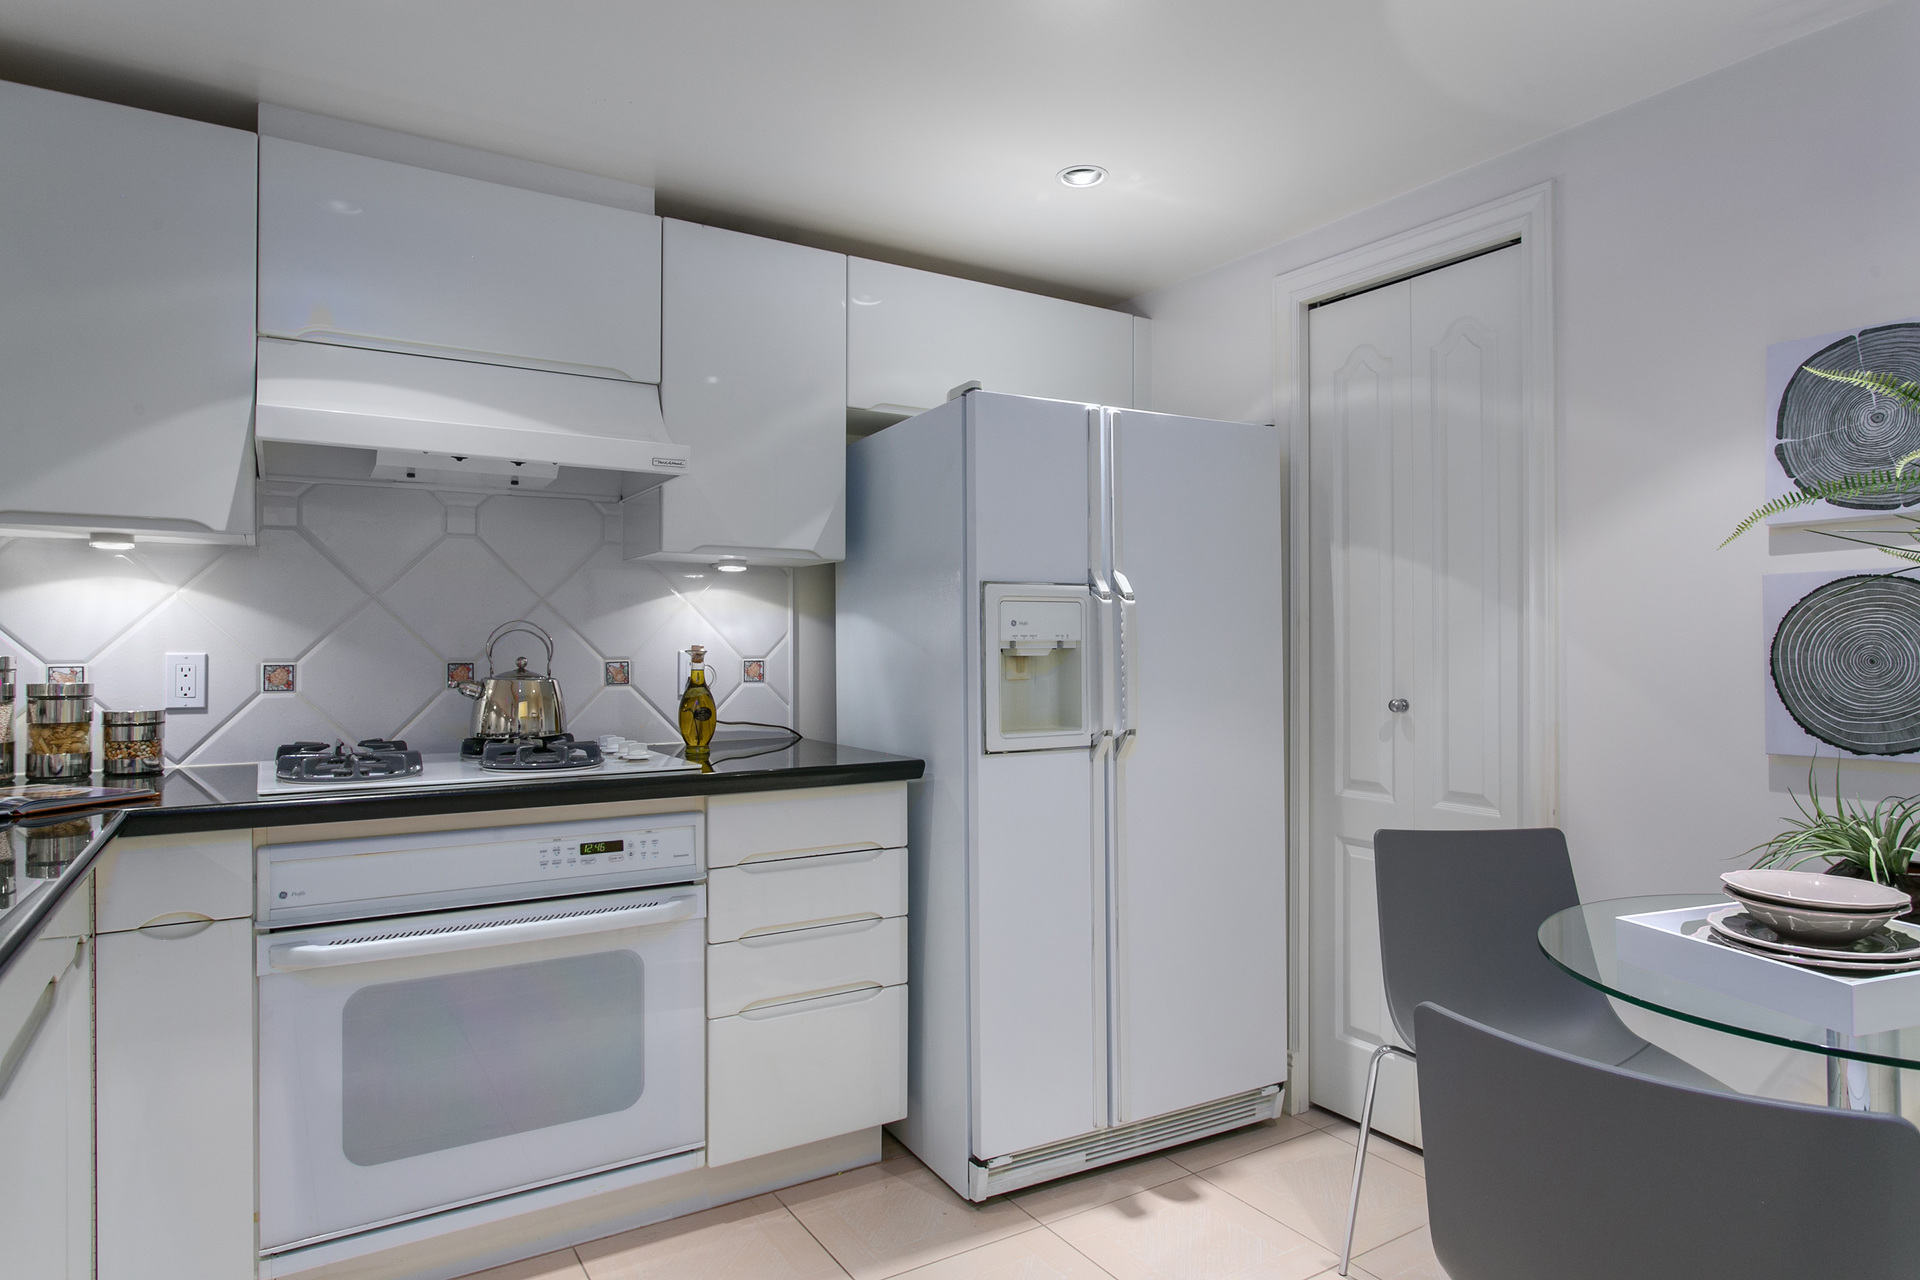 1j6a7481 at 401 - 535 Nicola, Coal Harbour, Vancouver West